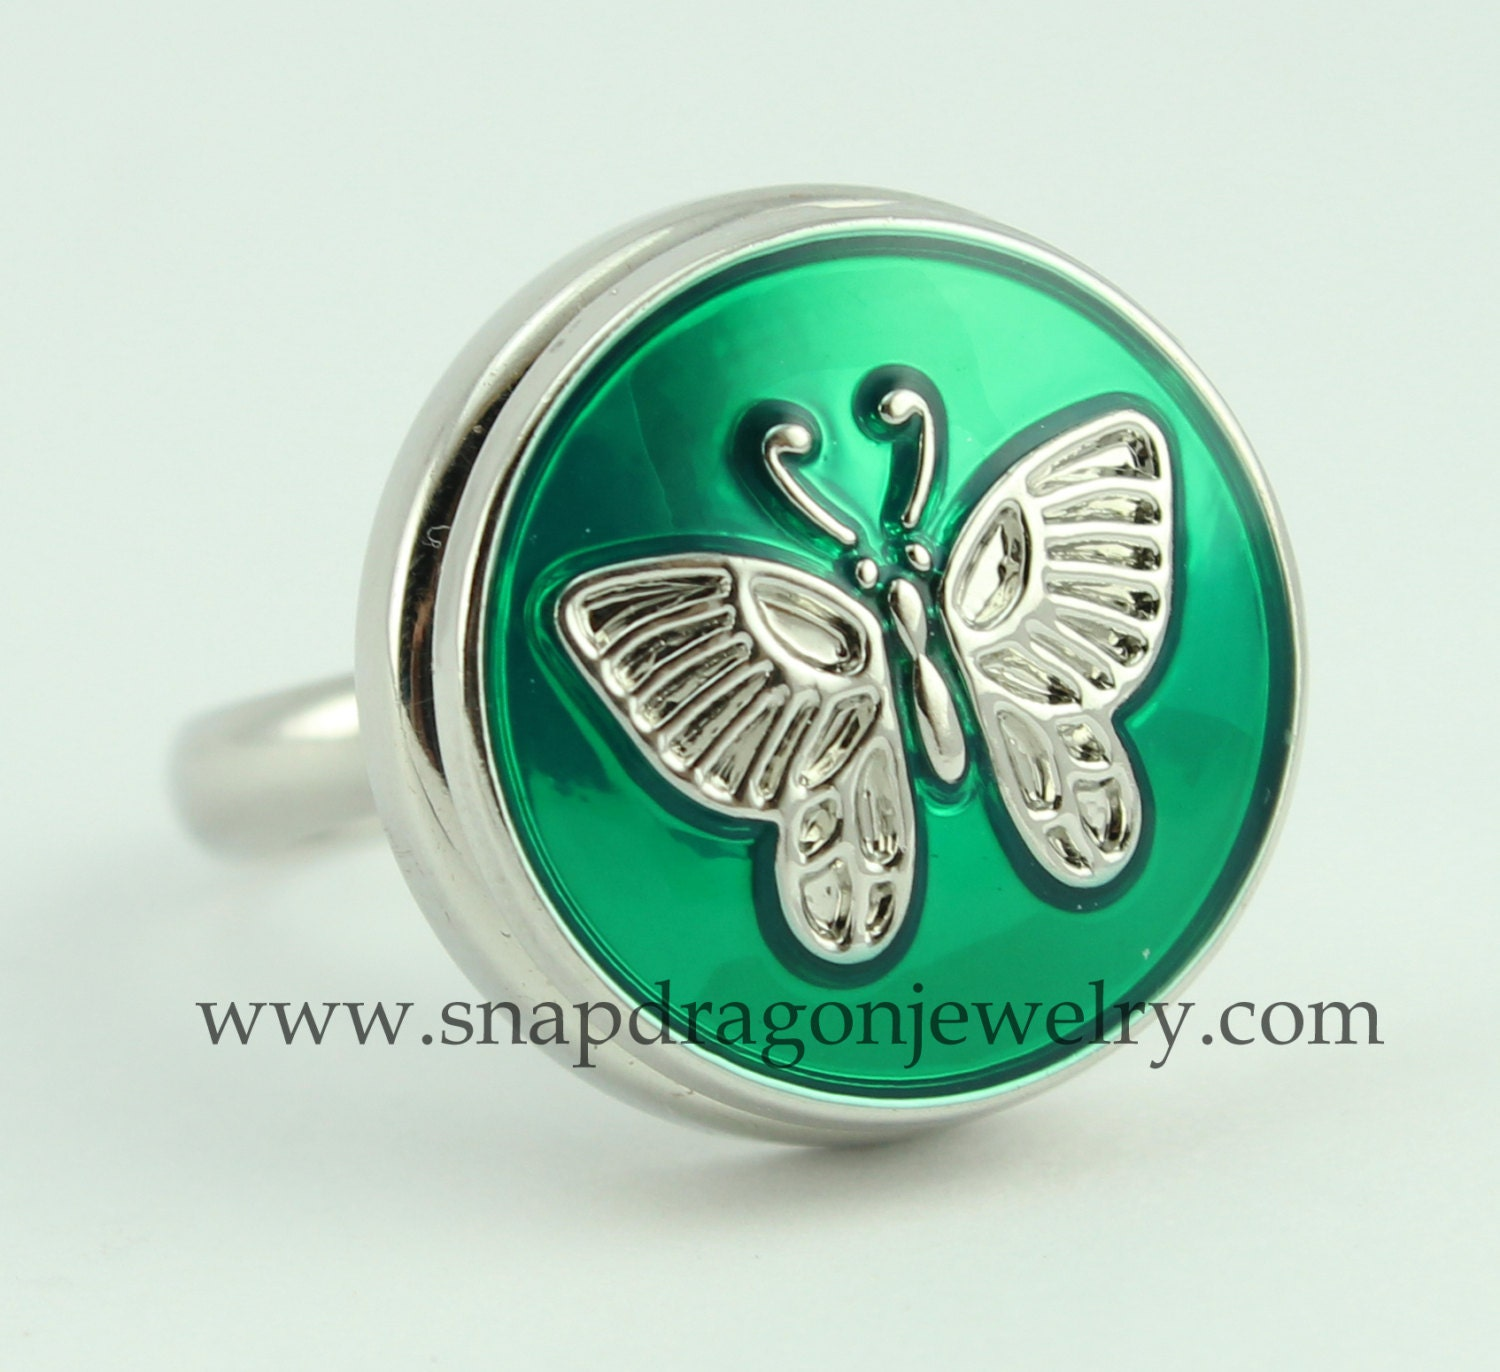 noosa style snap jewelry chunk popper charm button by